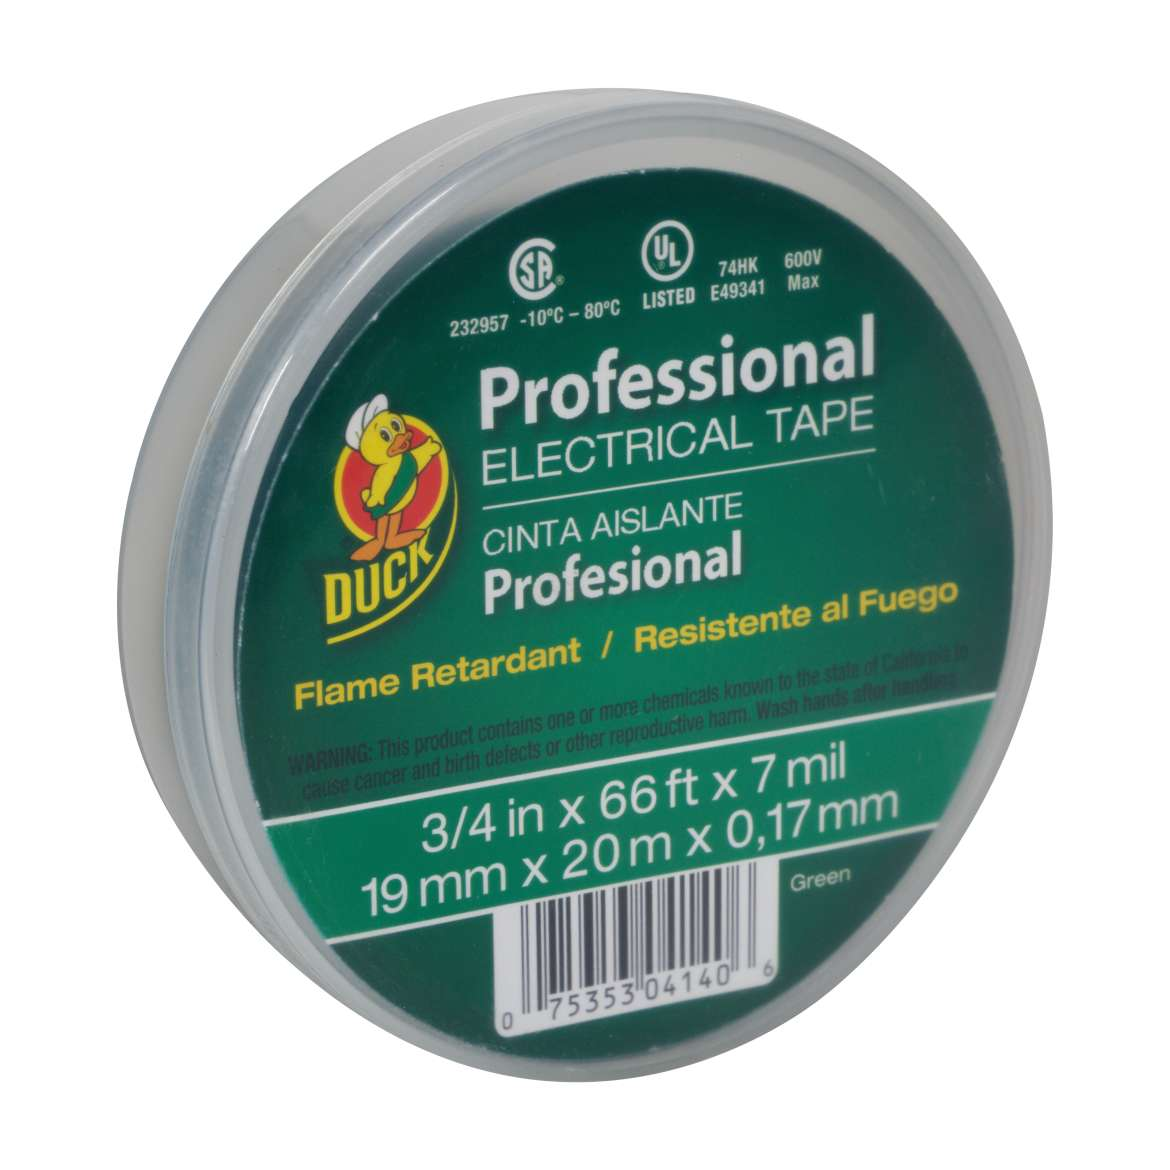 Duck® Brand Professional Electrical Tape Canister Pack - Green, .75 in. x 66 ft. x 7 mil. Image